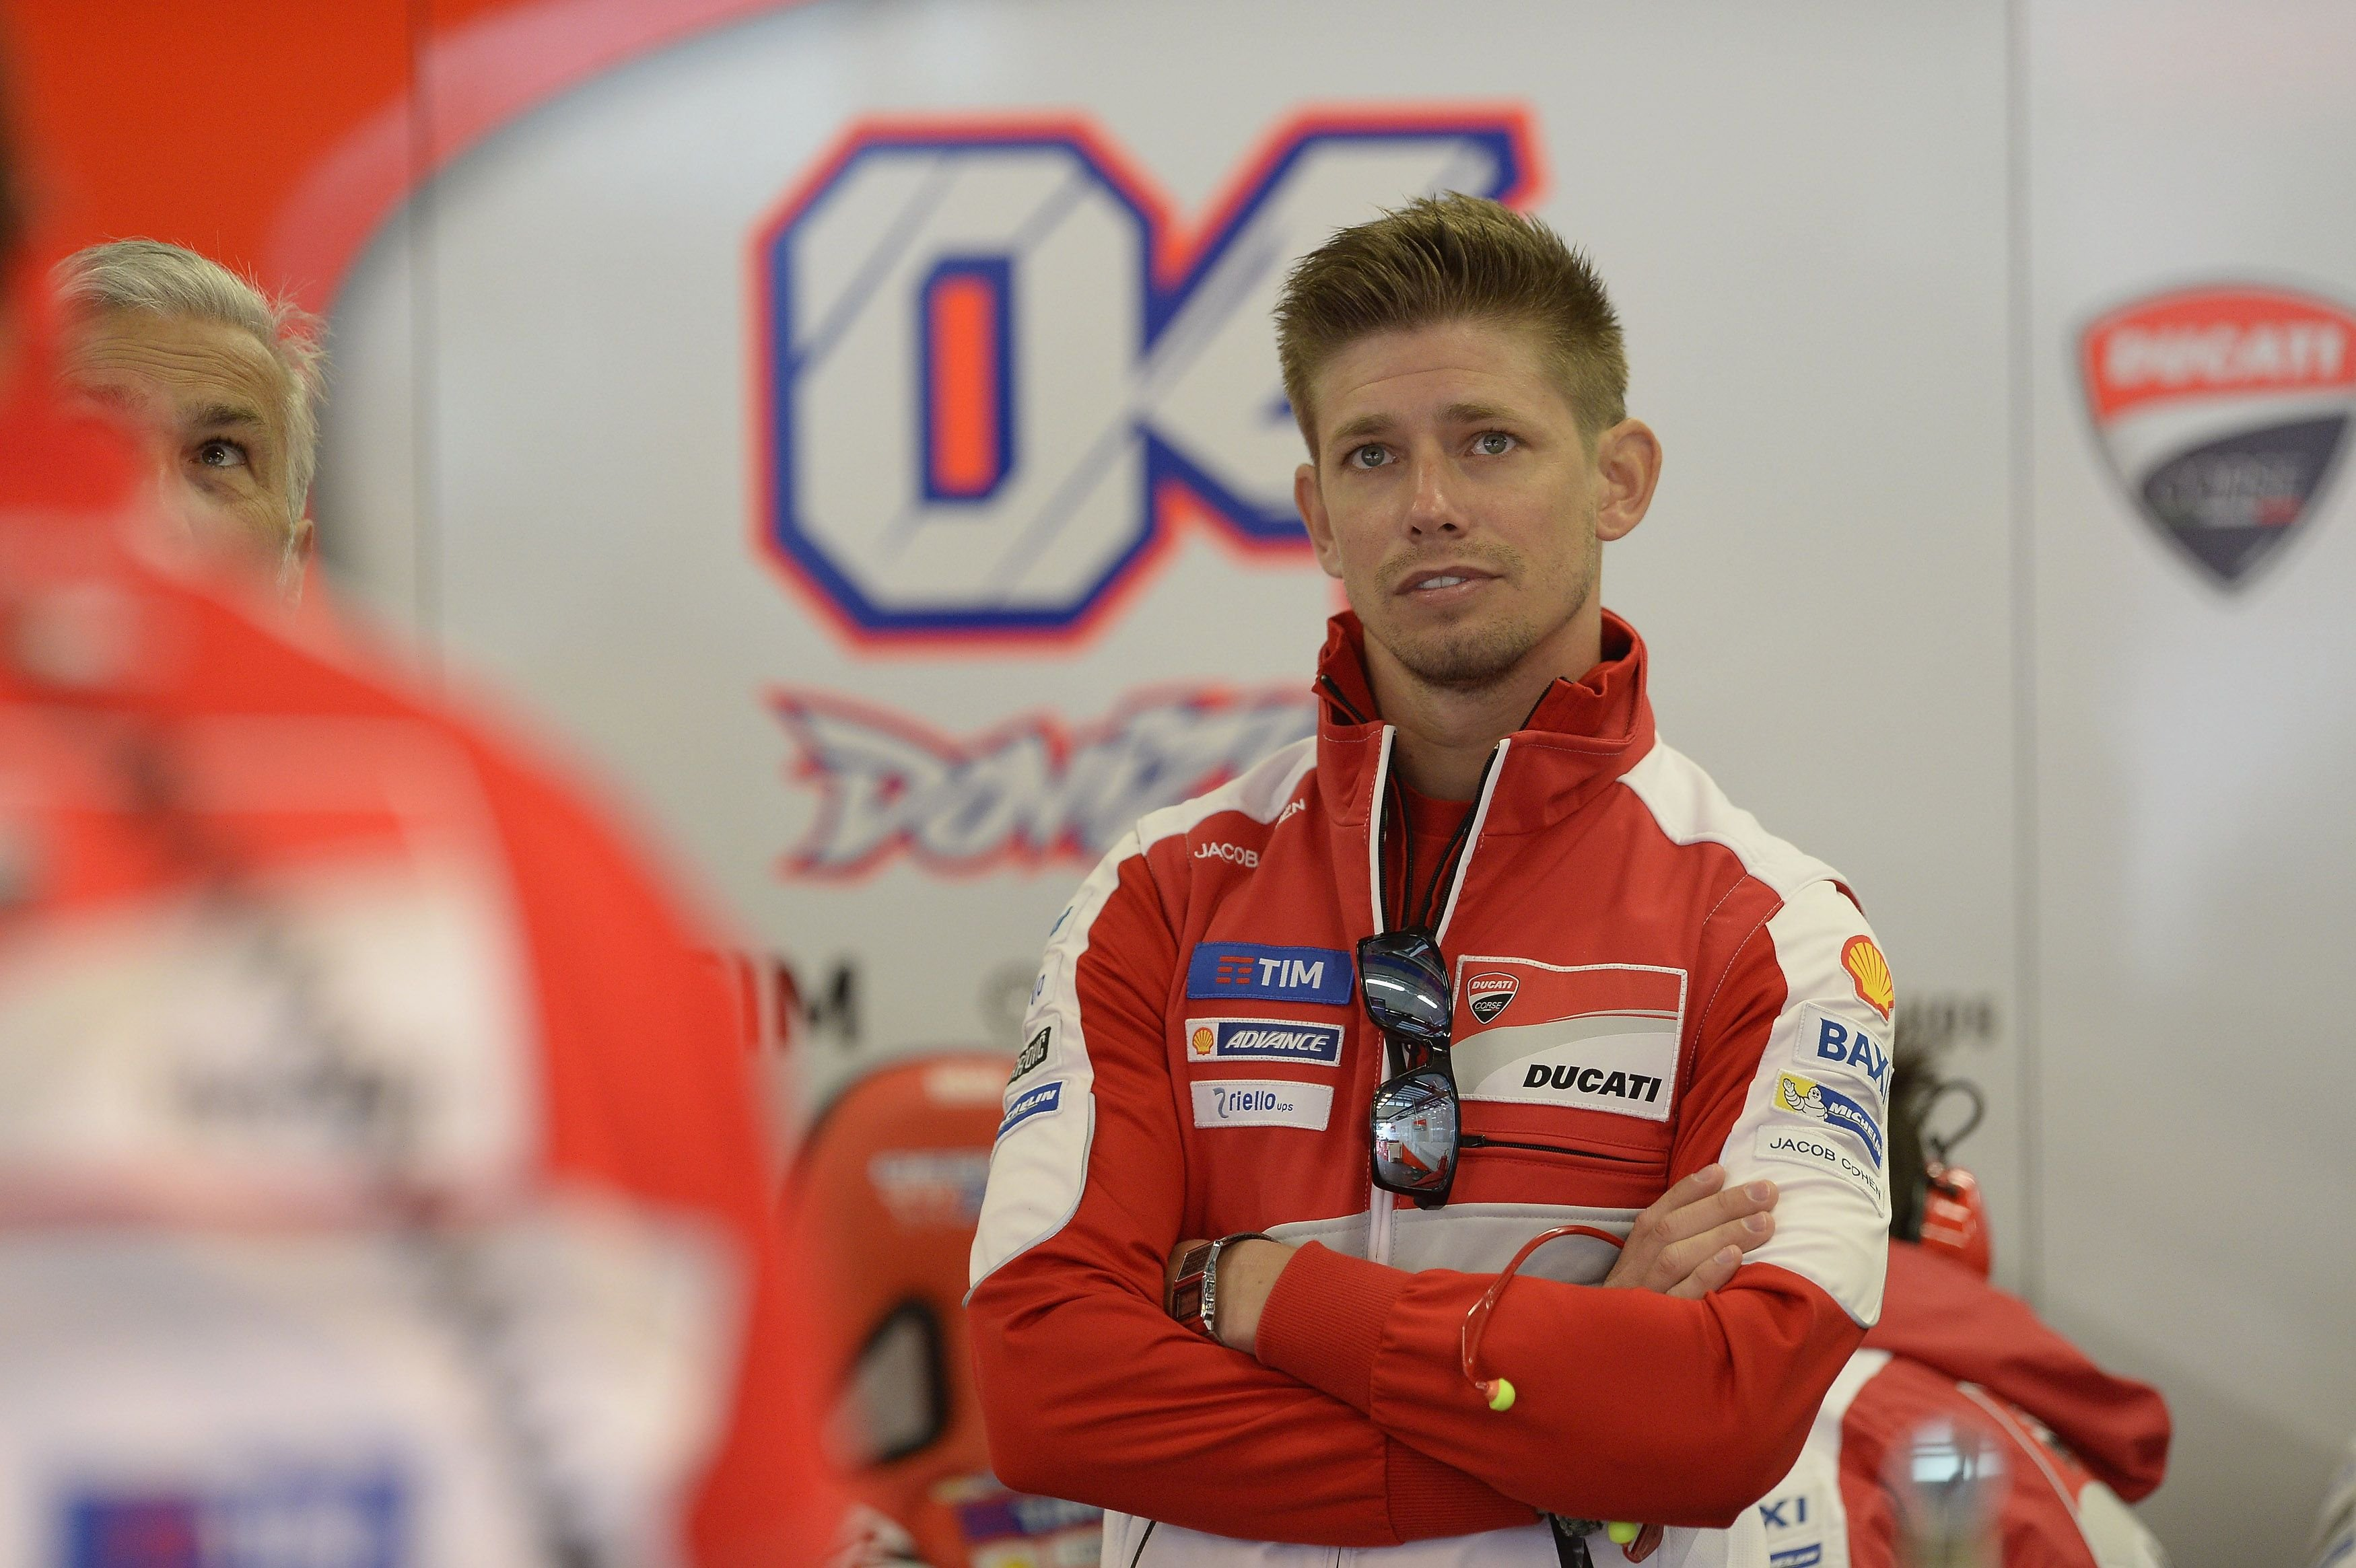 Casey Stoner of Australia and Ducati Team looks on in box at the MotoGp of Austria - Free Practice at Red Bull Ring on August 12, 2016 | Photo: Getty Images